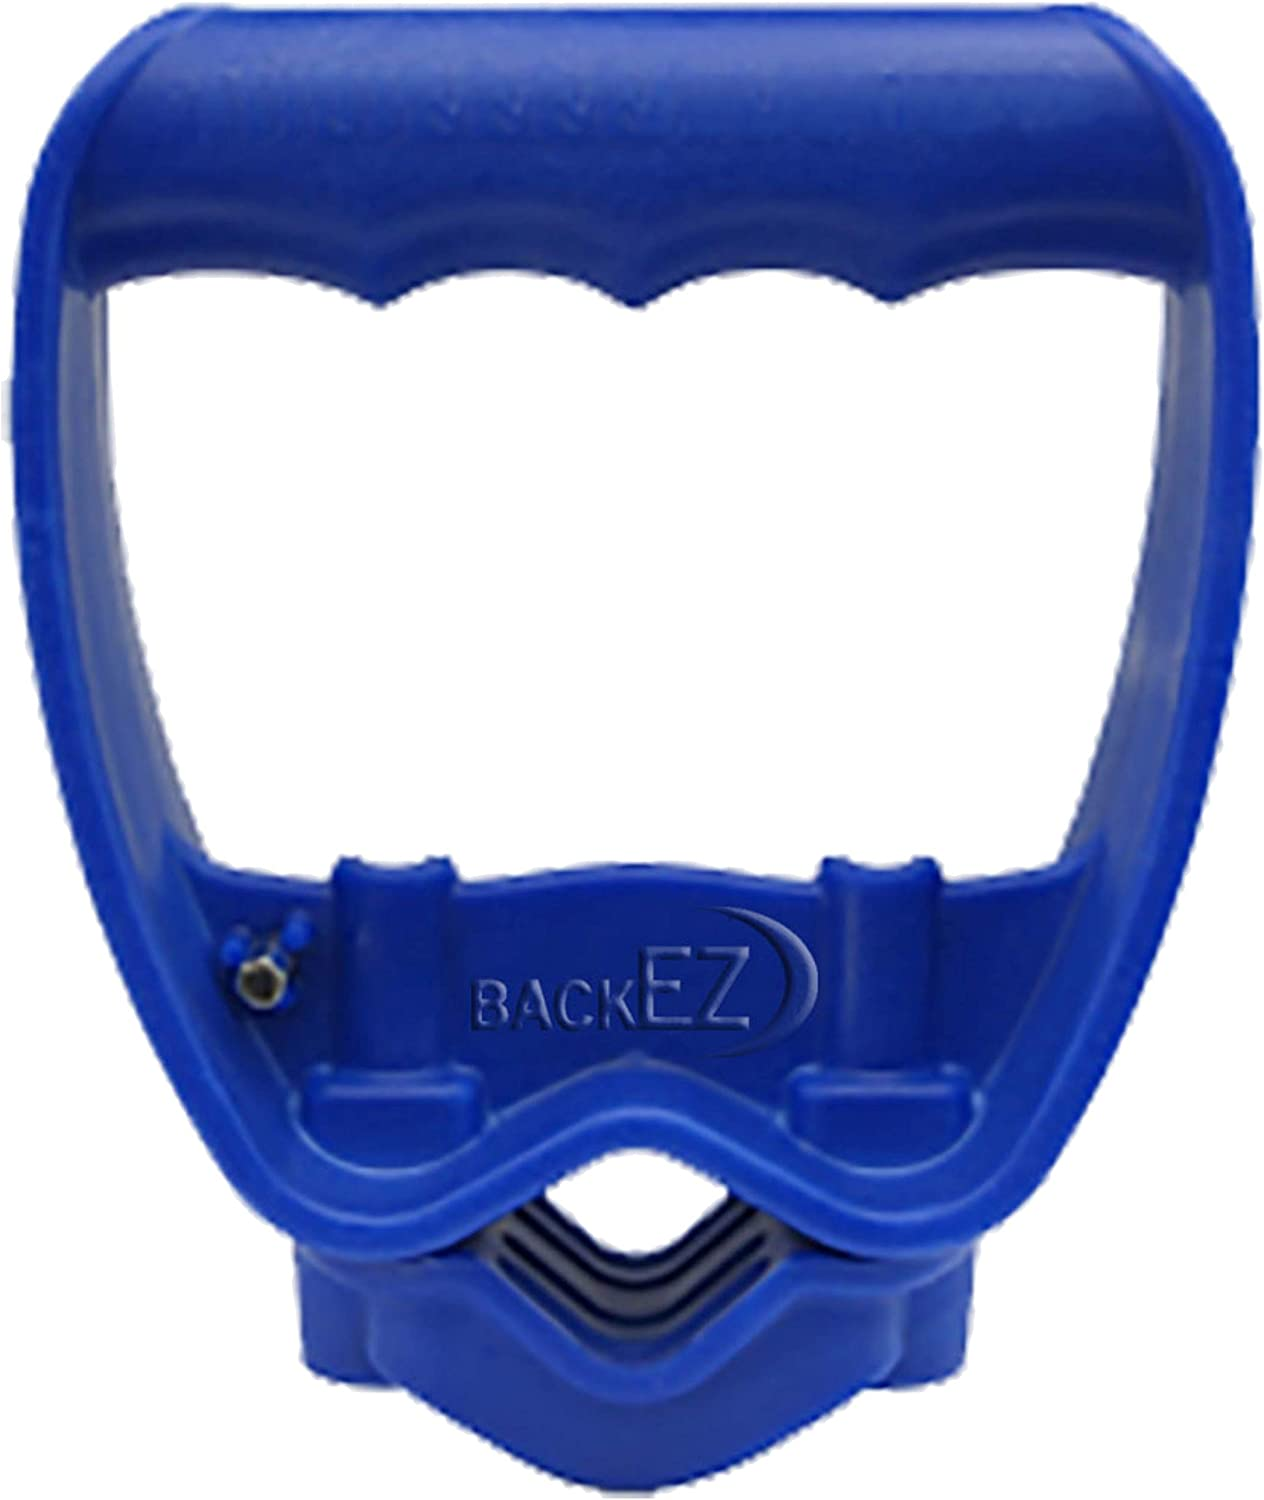 BackEZ Back-Saving Tool Handle Attachment, Labor-Saving Ergonomic Shovel or Rake Handle, Add-on Universal Fitting Grip, Quick Installation, Blue